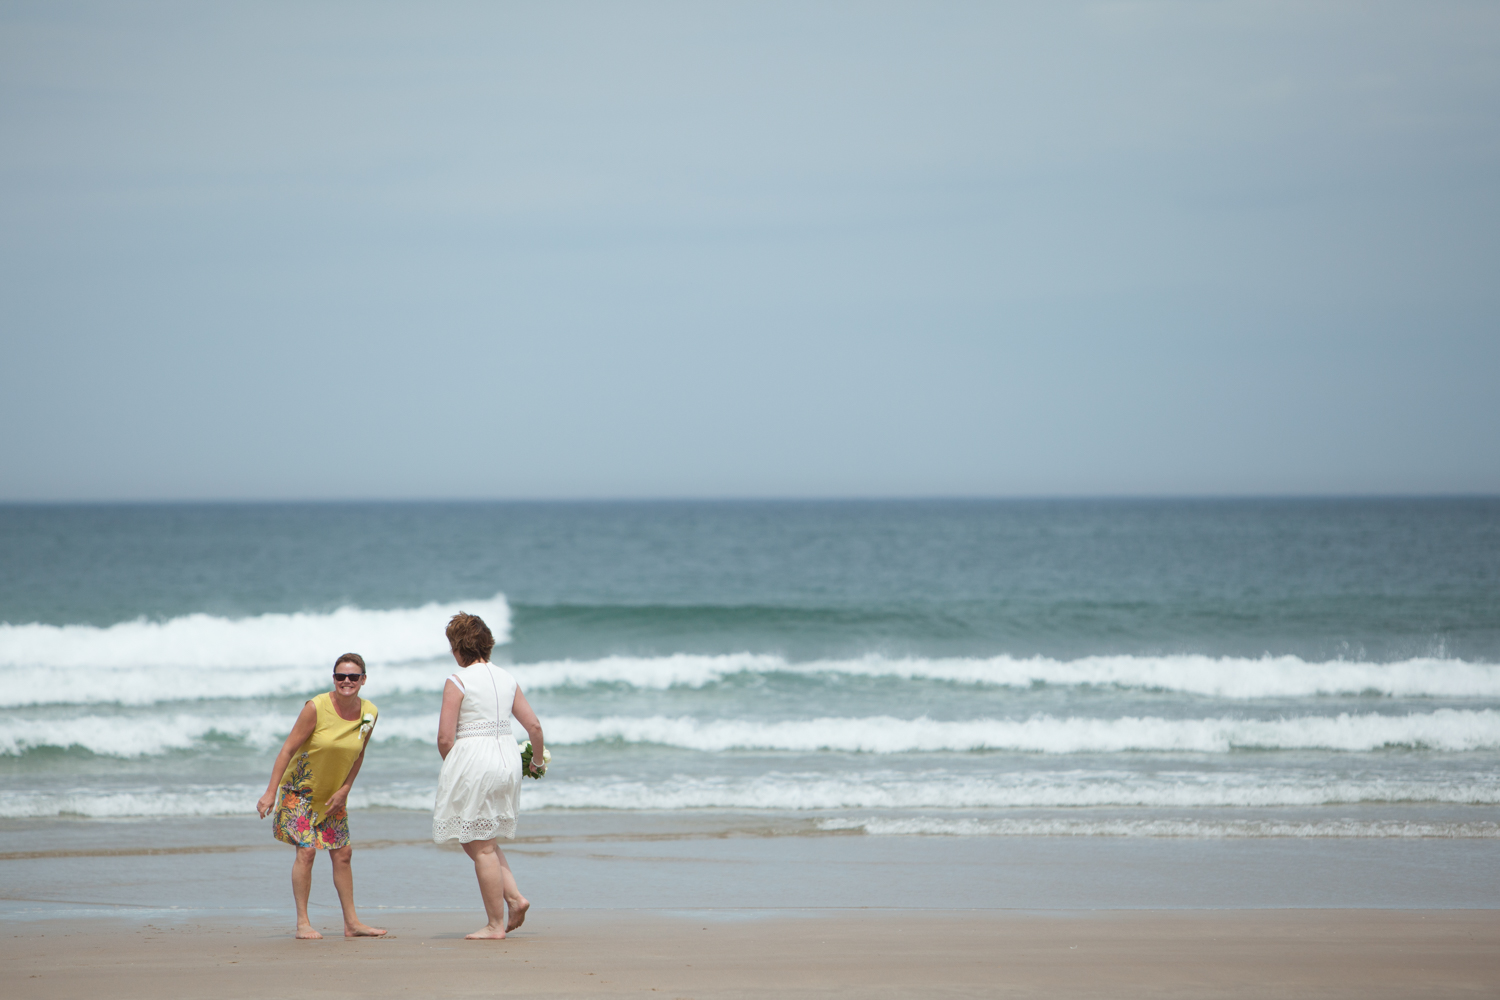 wedding-bamburgh-pictorial-elopement-friends-beach-1016.jpg